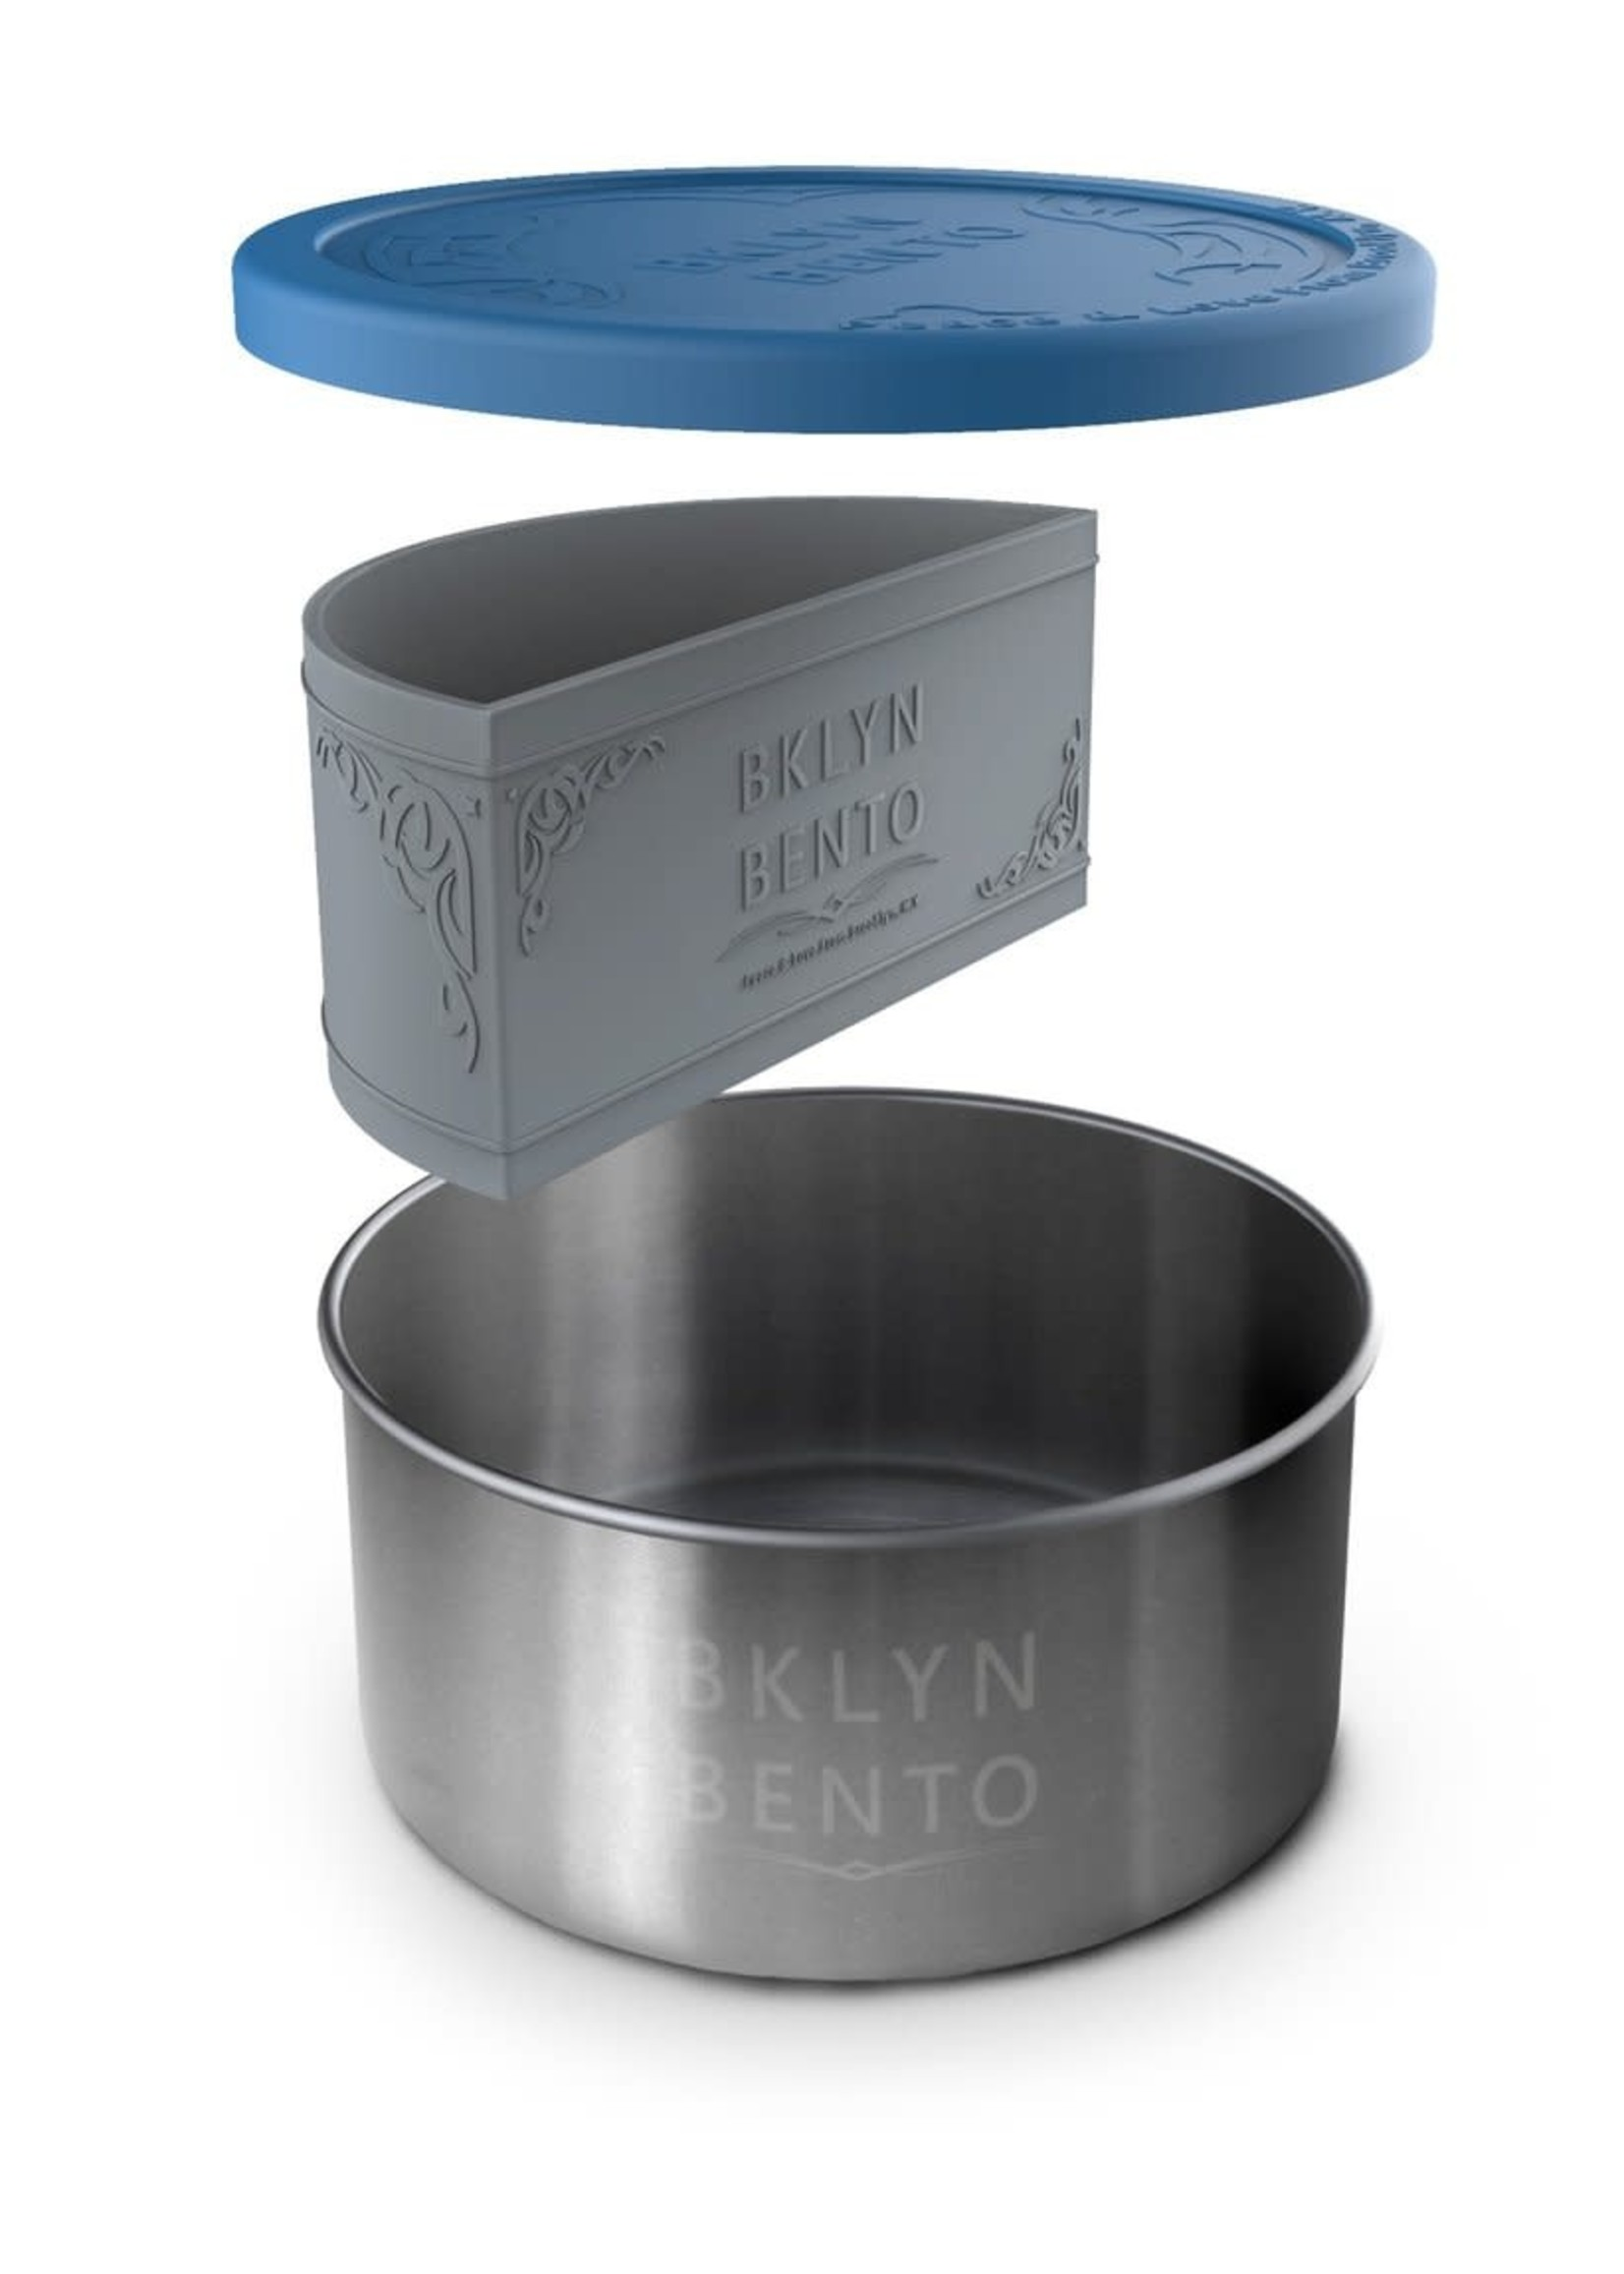 Brooklyn Bento Stainless Steel Large Round Container With Silicone Food Separator and Leak-Proof Lid